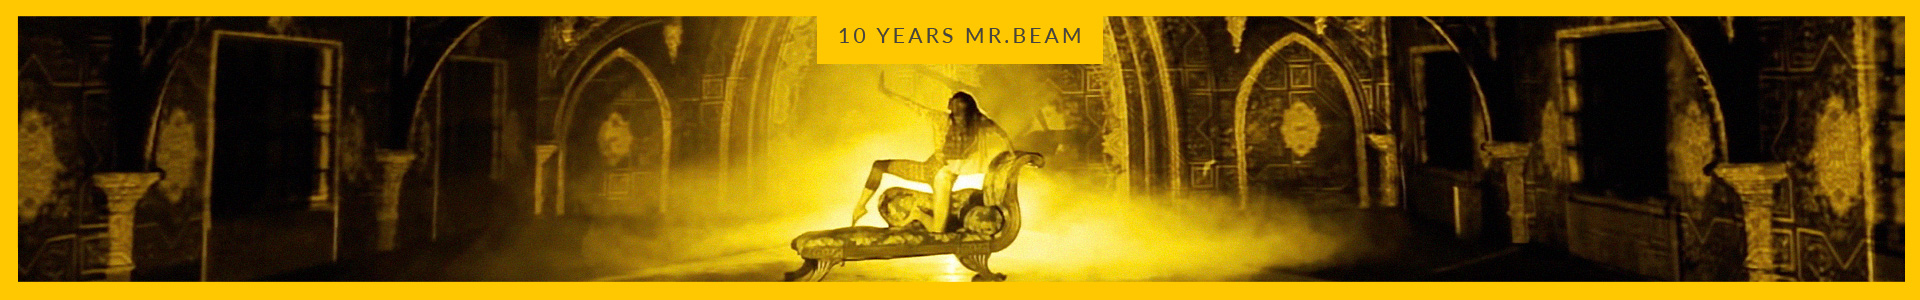 10 Years Mr Beam Morphosis